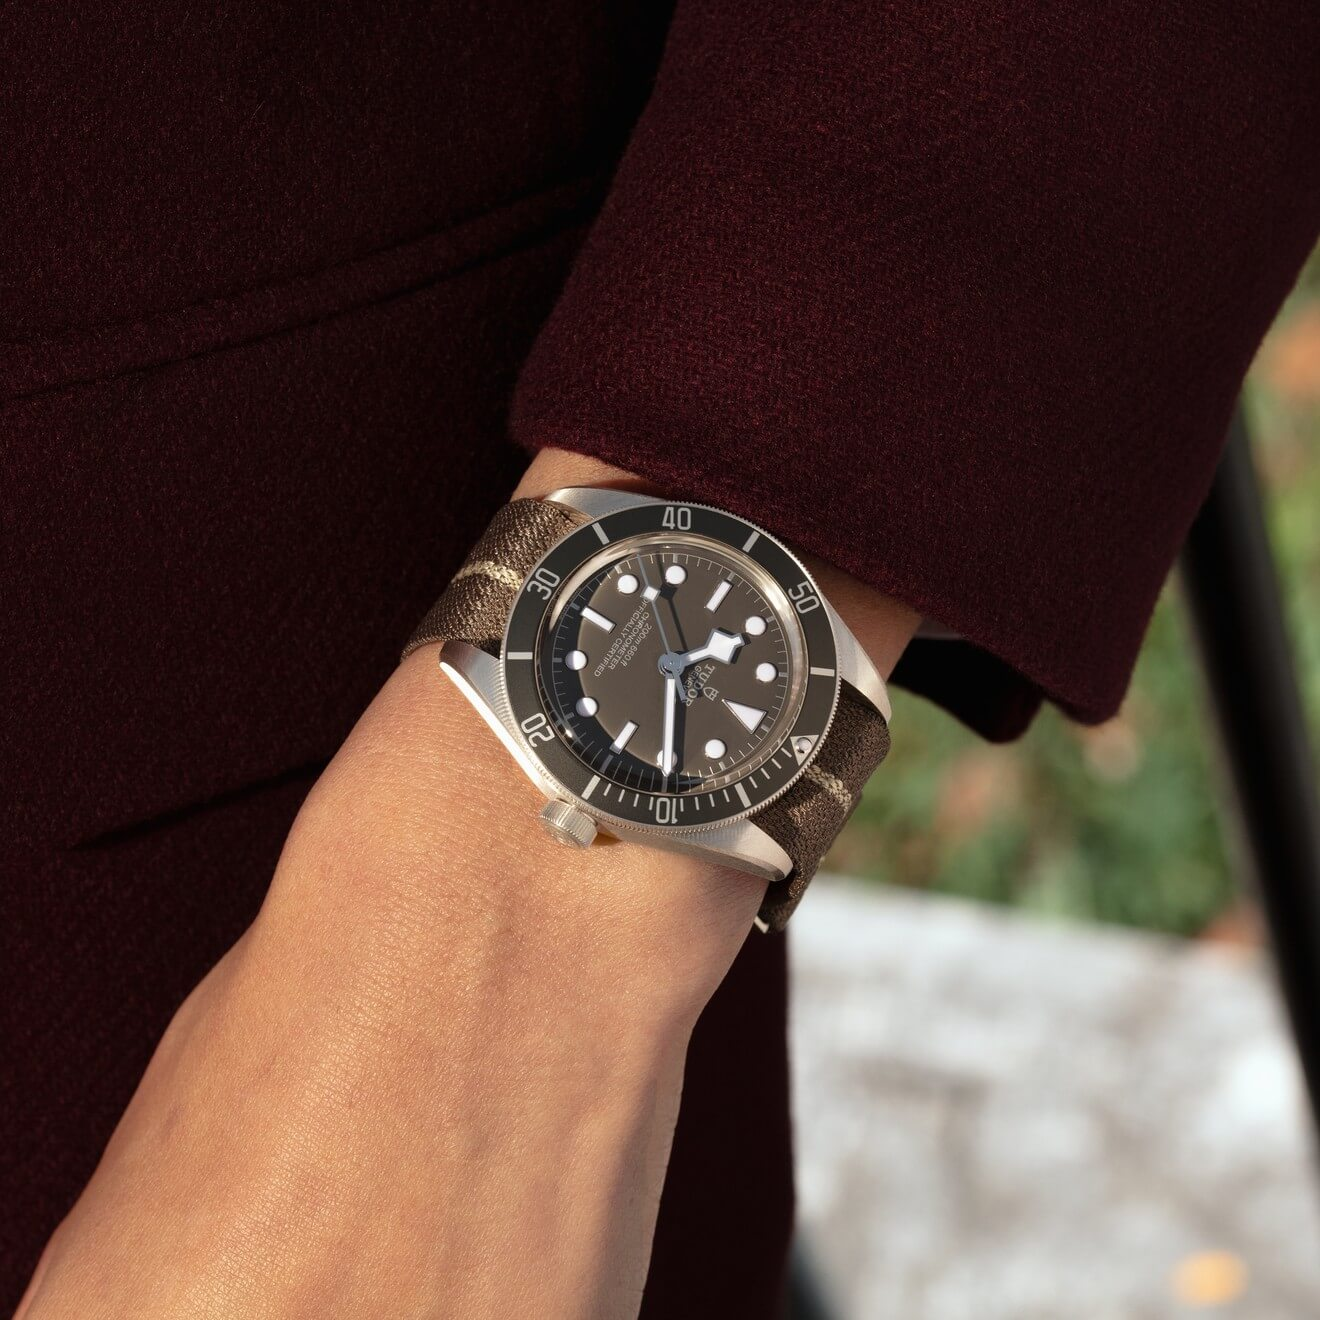 Tudor Black Bay Fifty-Eight 925 Ref. 79010SG-0002 - Lifestyle - Mamic 1970